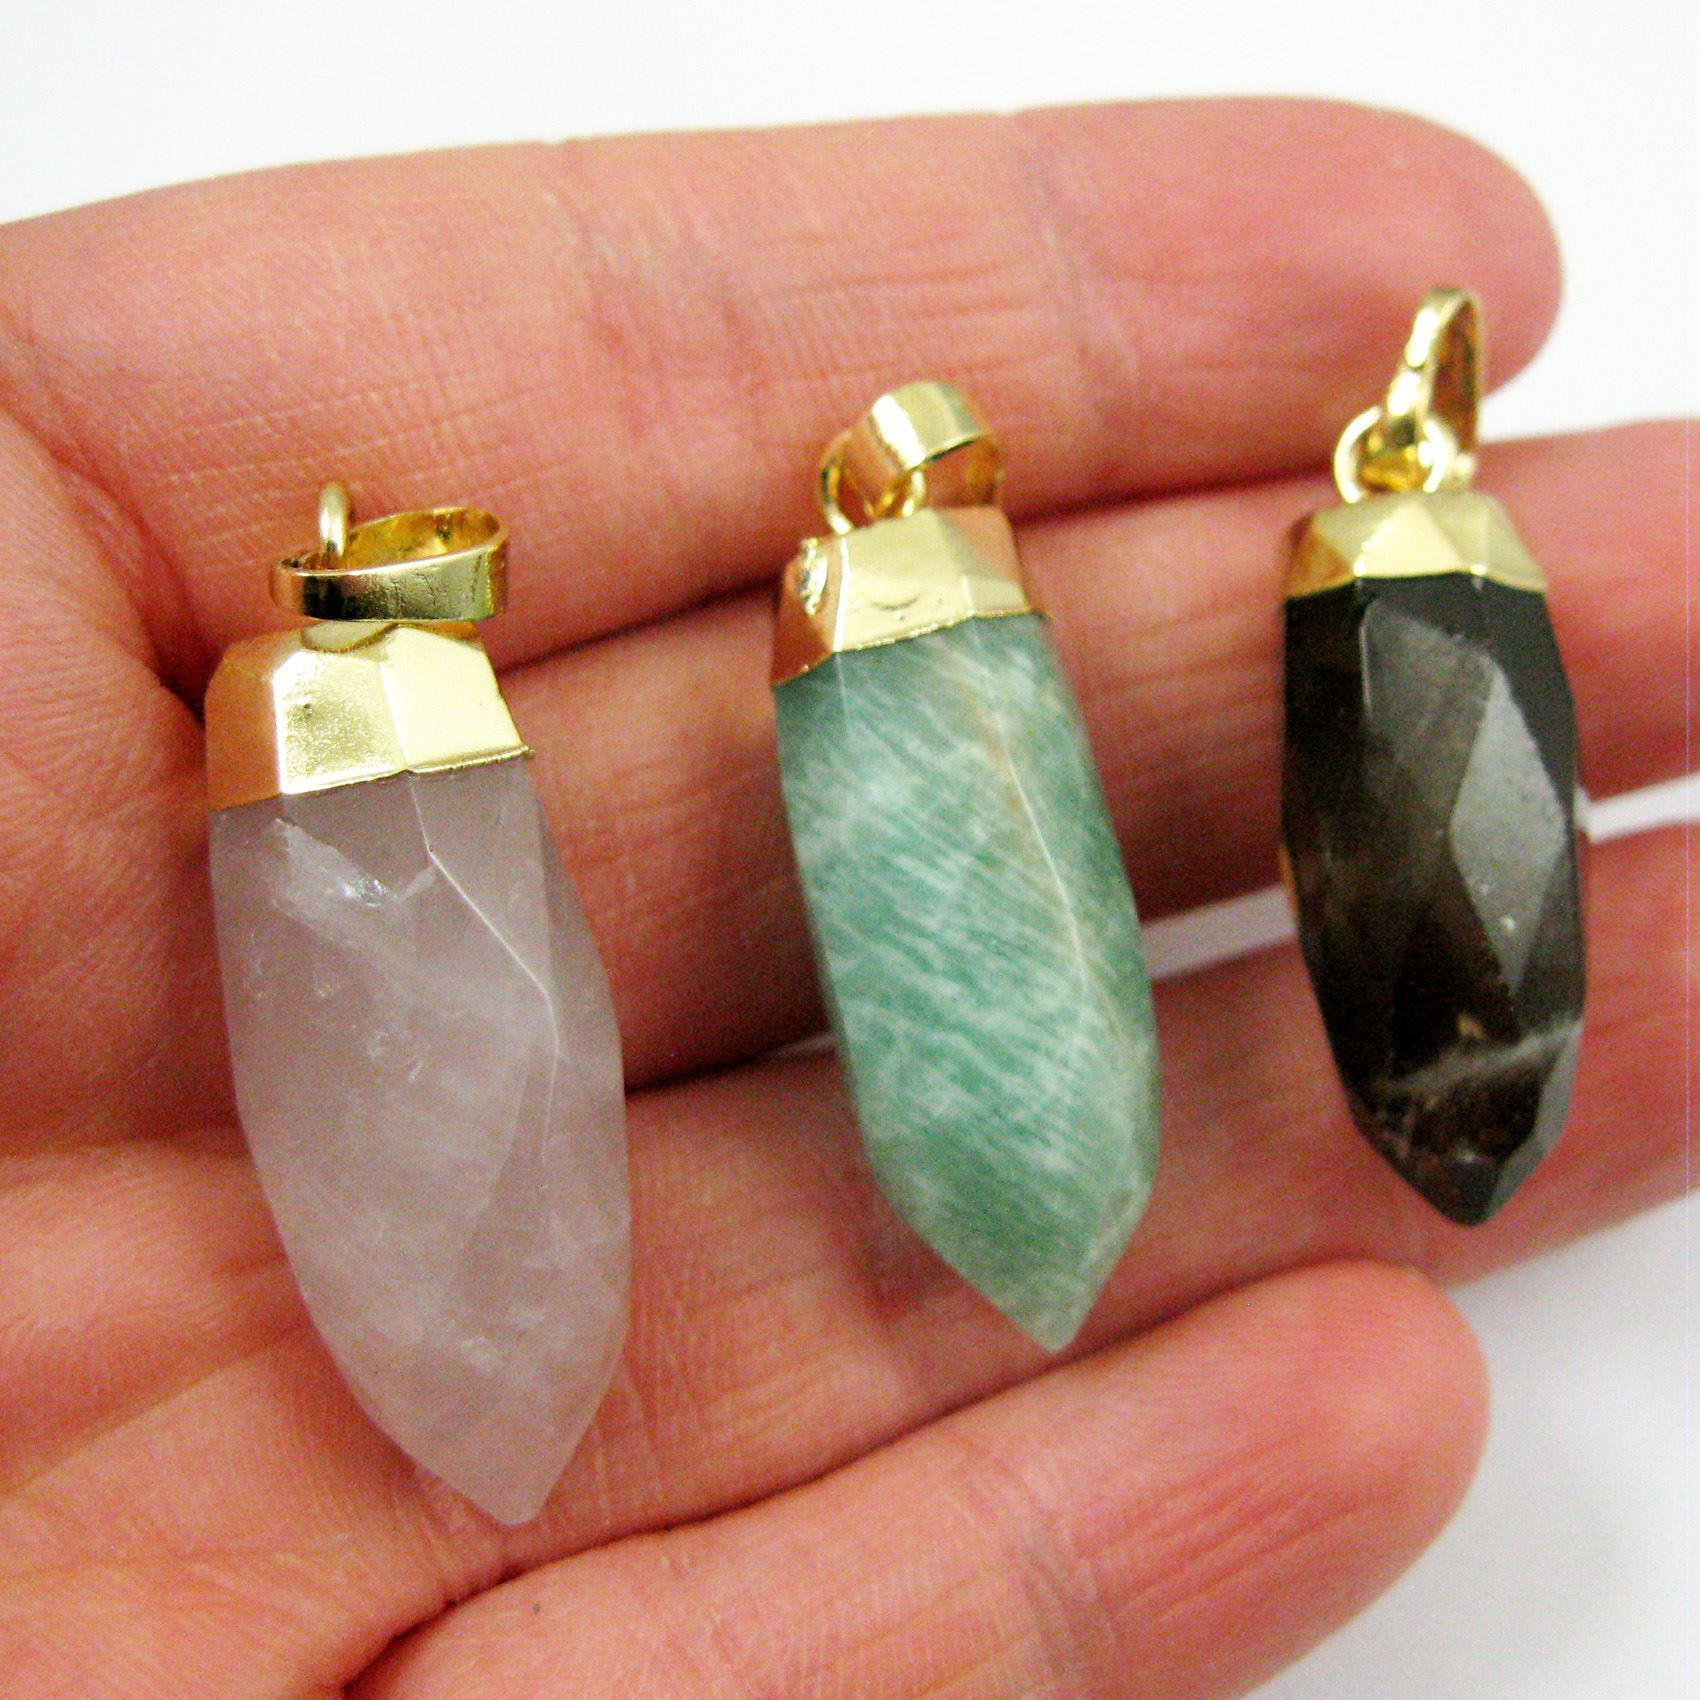 Gemstone Spike Pendant, Faceted Druzy Spike Pendant,Prehnite Pendant with Gold plated Bail- 30mm